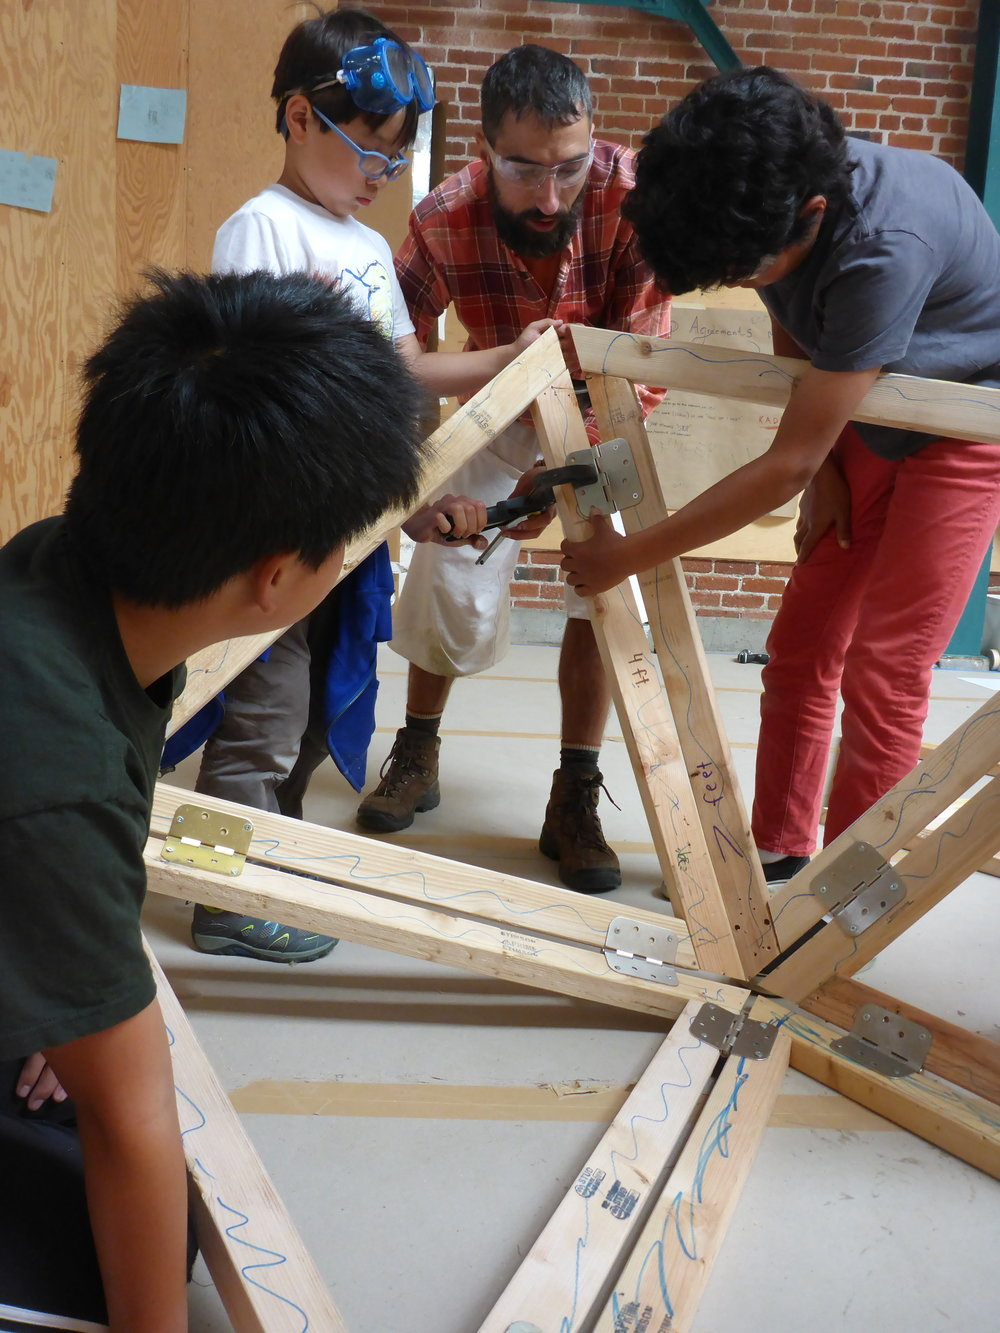 Peter, Ryan, Nathan and Cole hold the dome up in place in order to place a hinge.